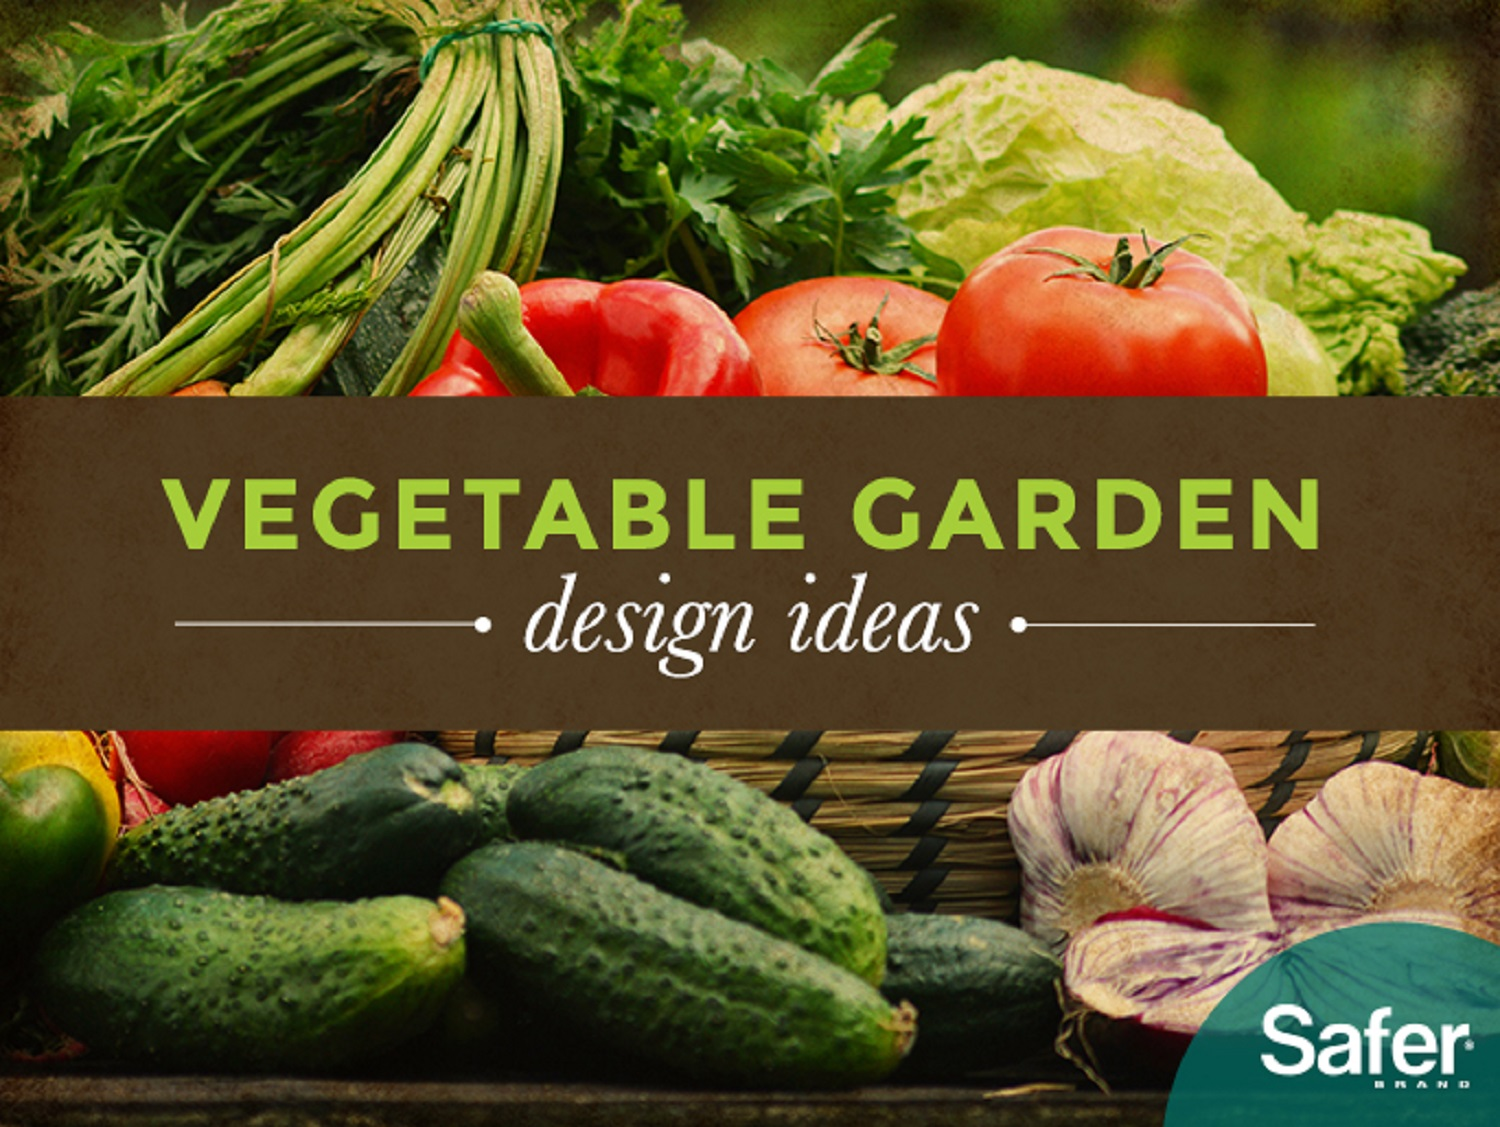 How to design the perfect vegetable garden for any space | Inhabitat ...